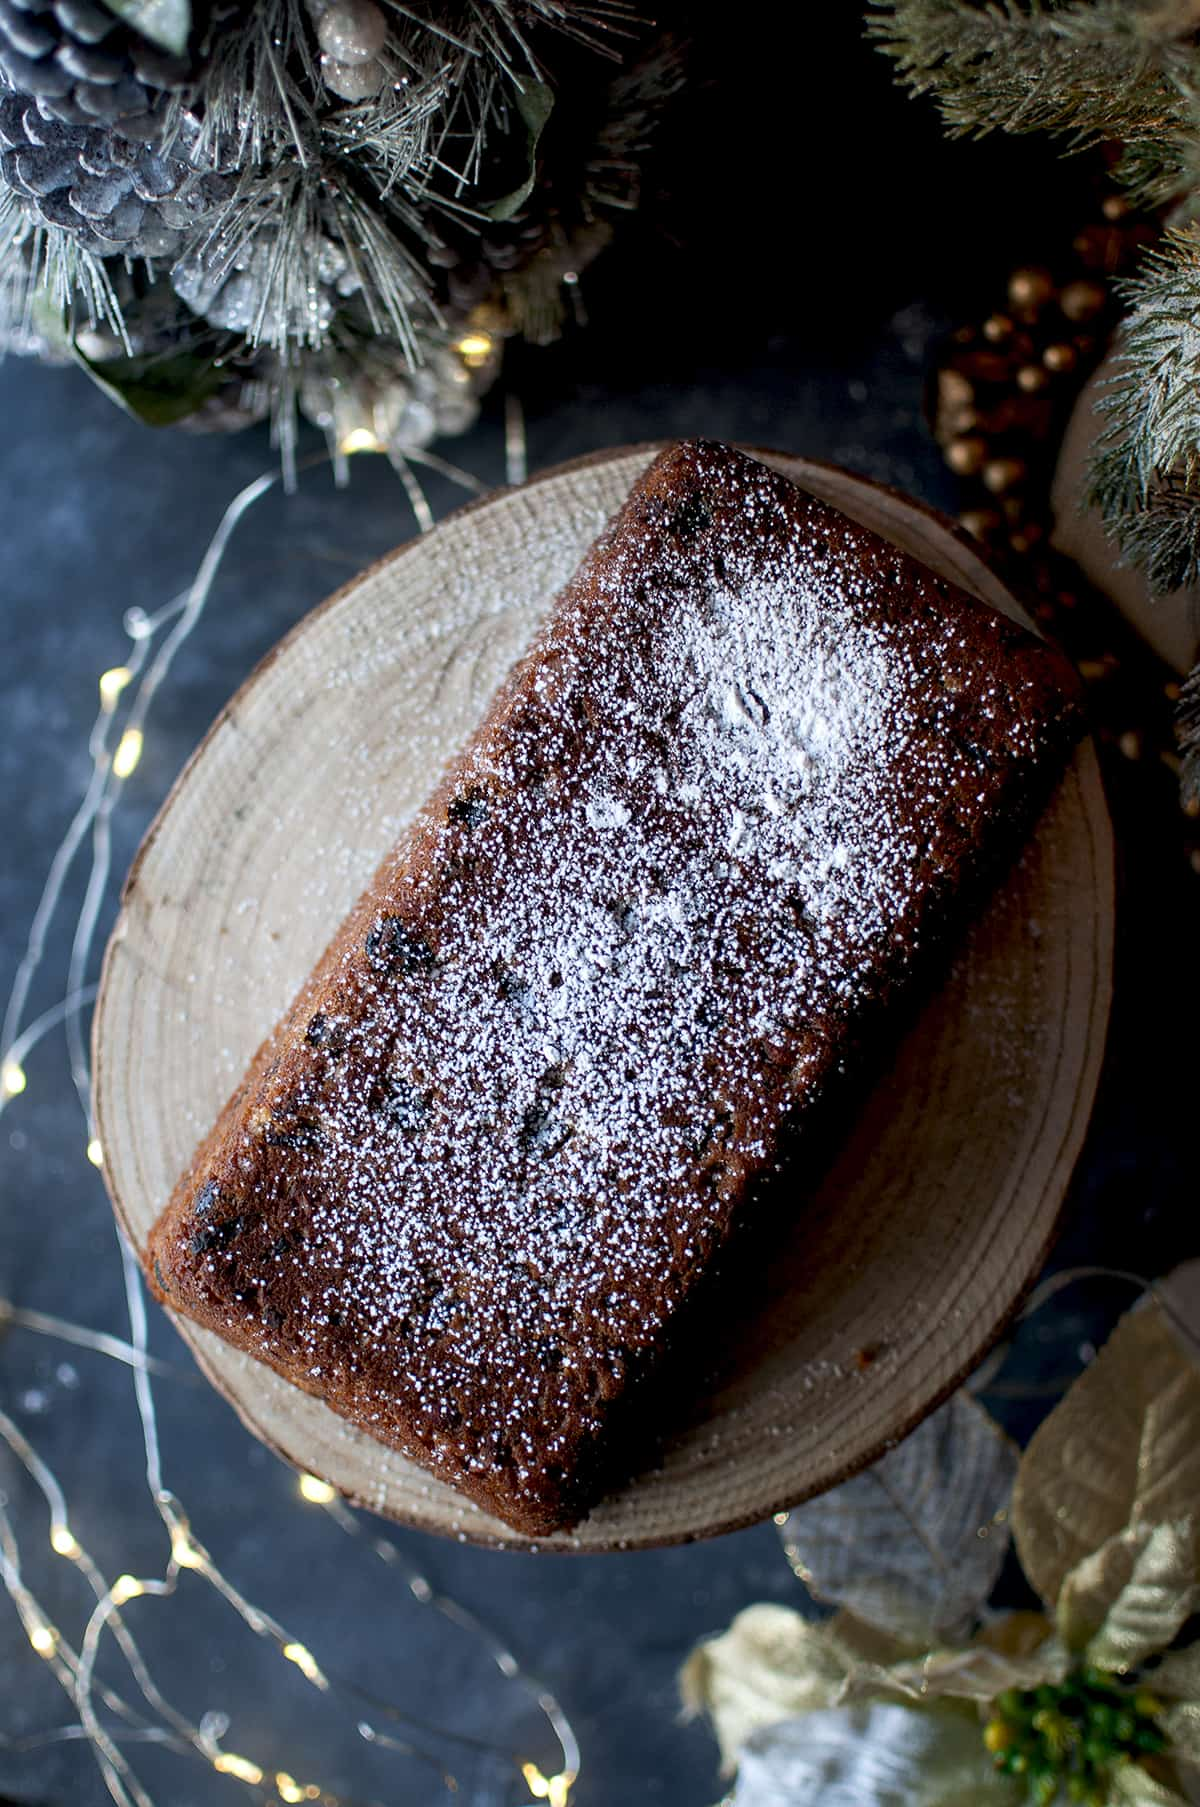 Loaf of plum cake sprinkled with powdered sugar on a wooden stand